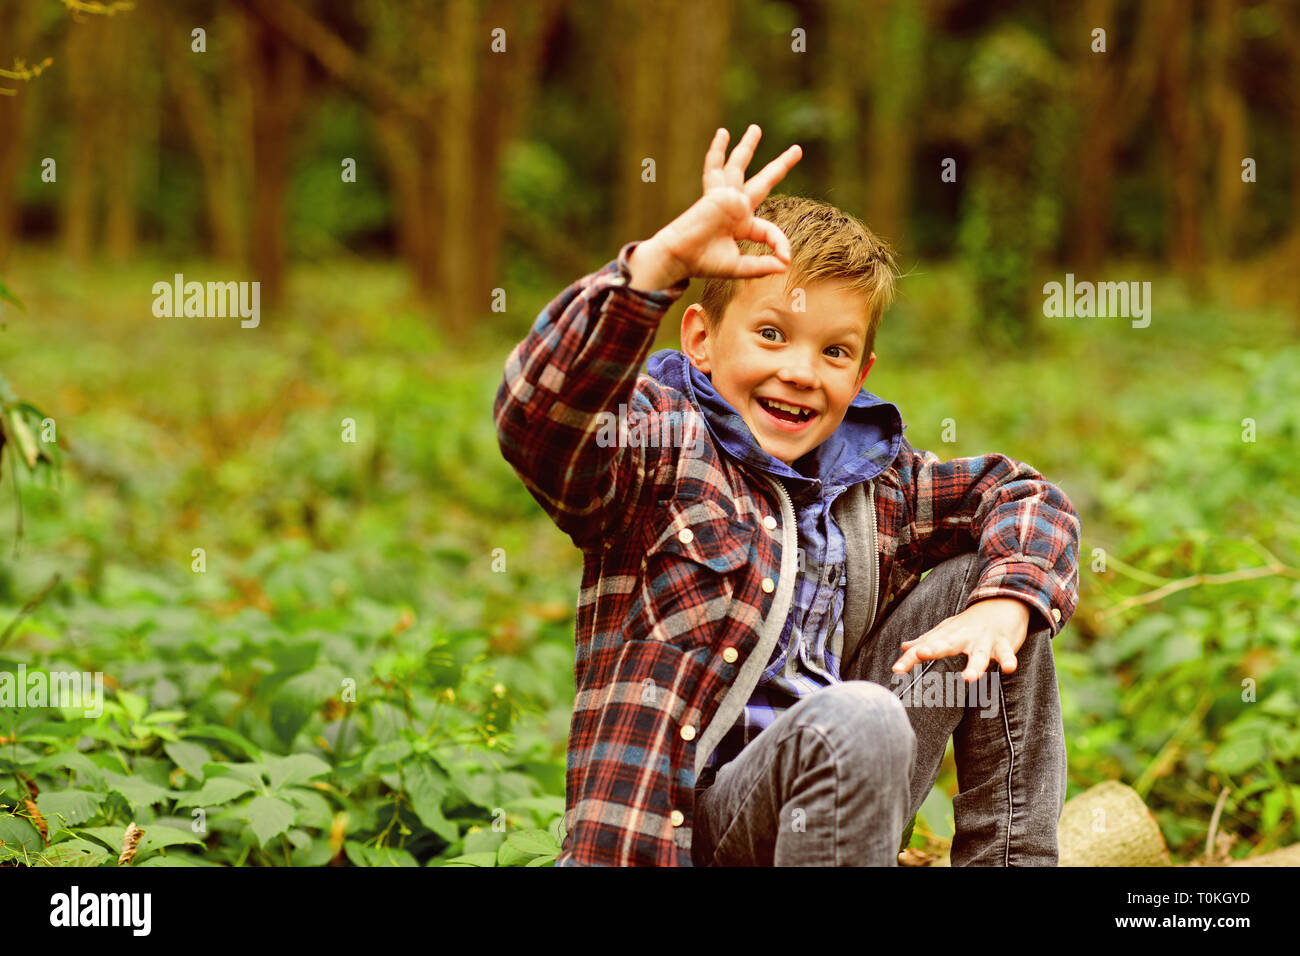 I feel ok. Little boy show ok sign. Happy little boy. Small boy enjoy day in woods. Just relax, everything is ok - Stock Image